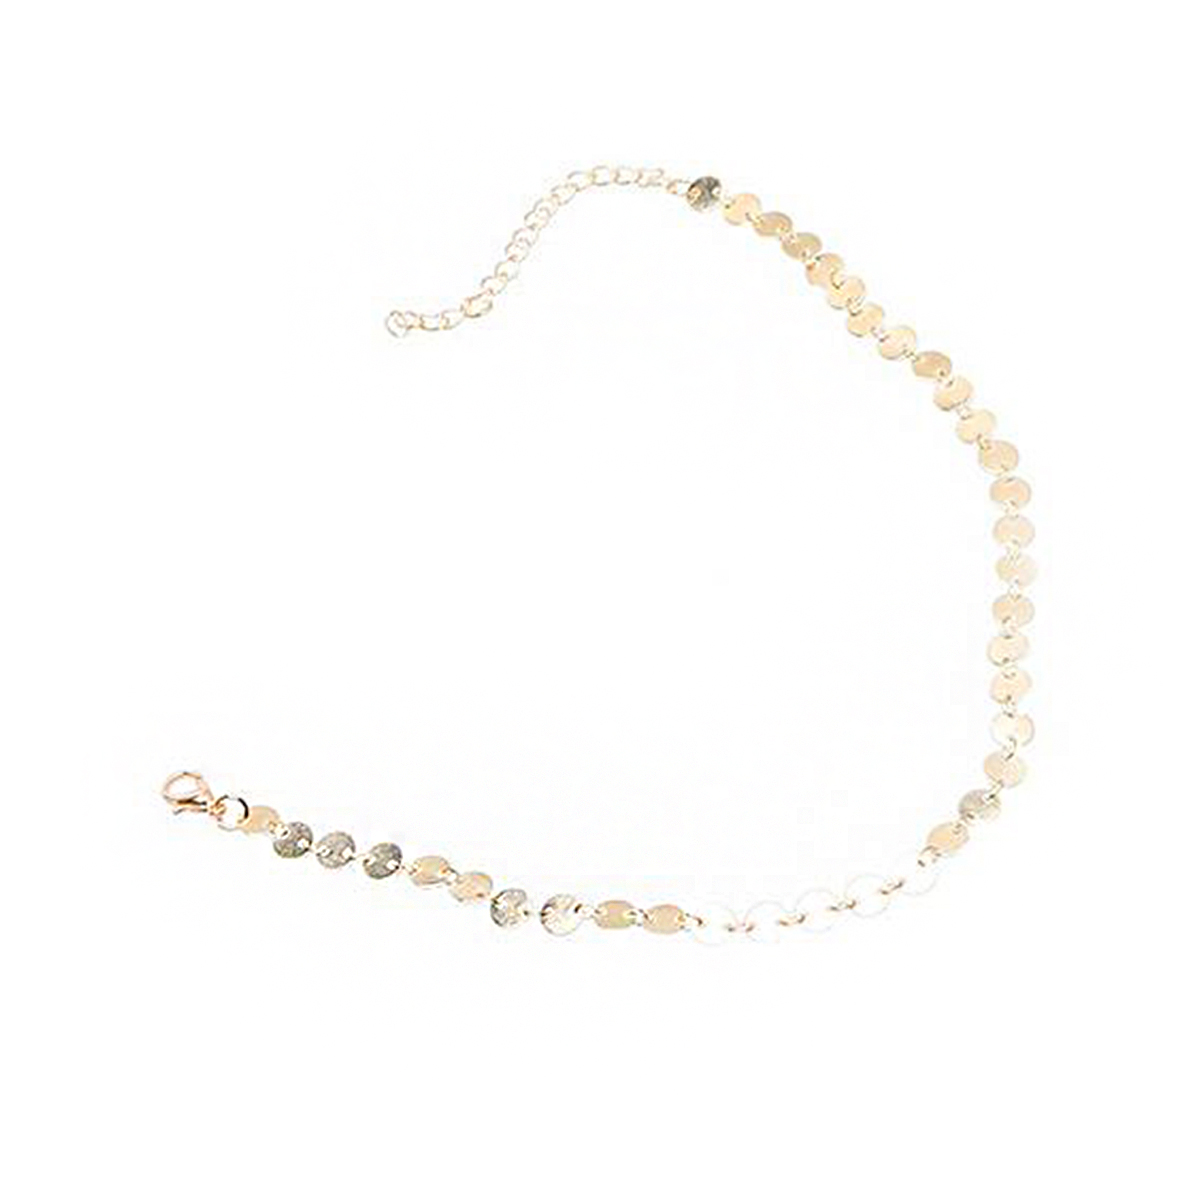 Collier Femme 2017 Choker Maxi Necklace For Women Sequin Disc Gold Silver Chain Collar Statement Neckalce Ladies Fashion Jewelry